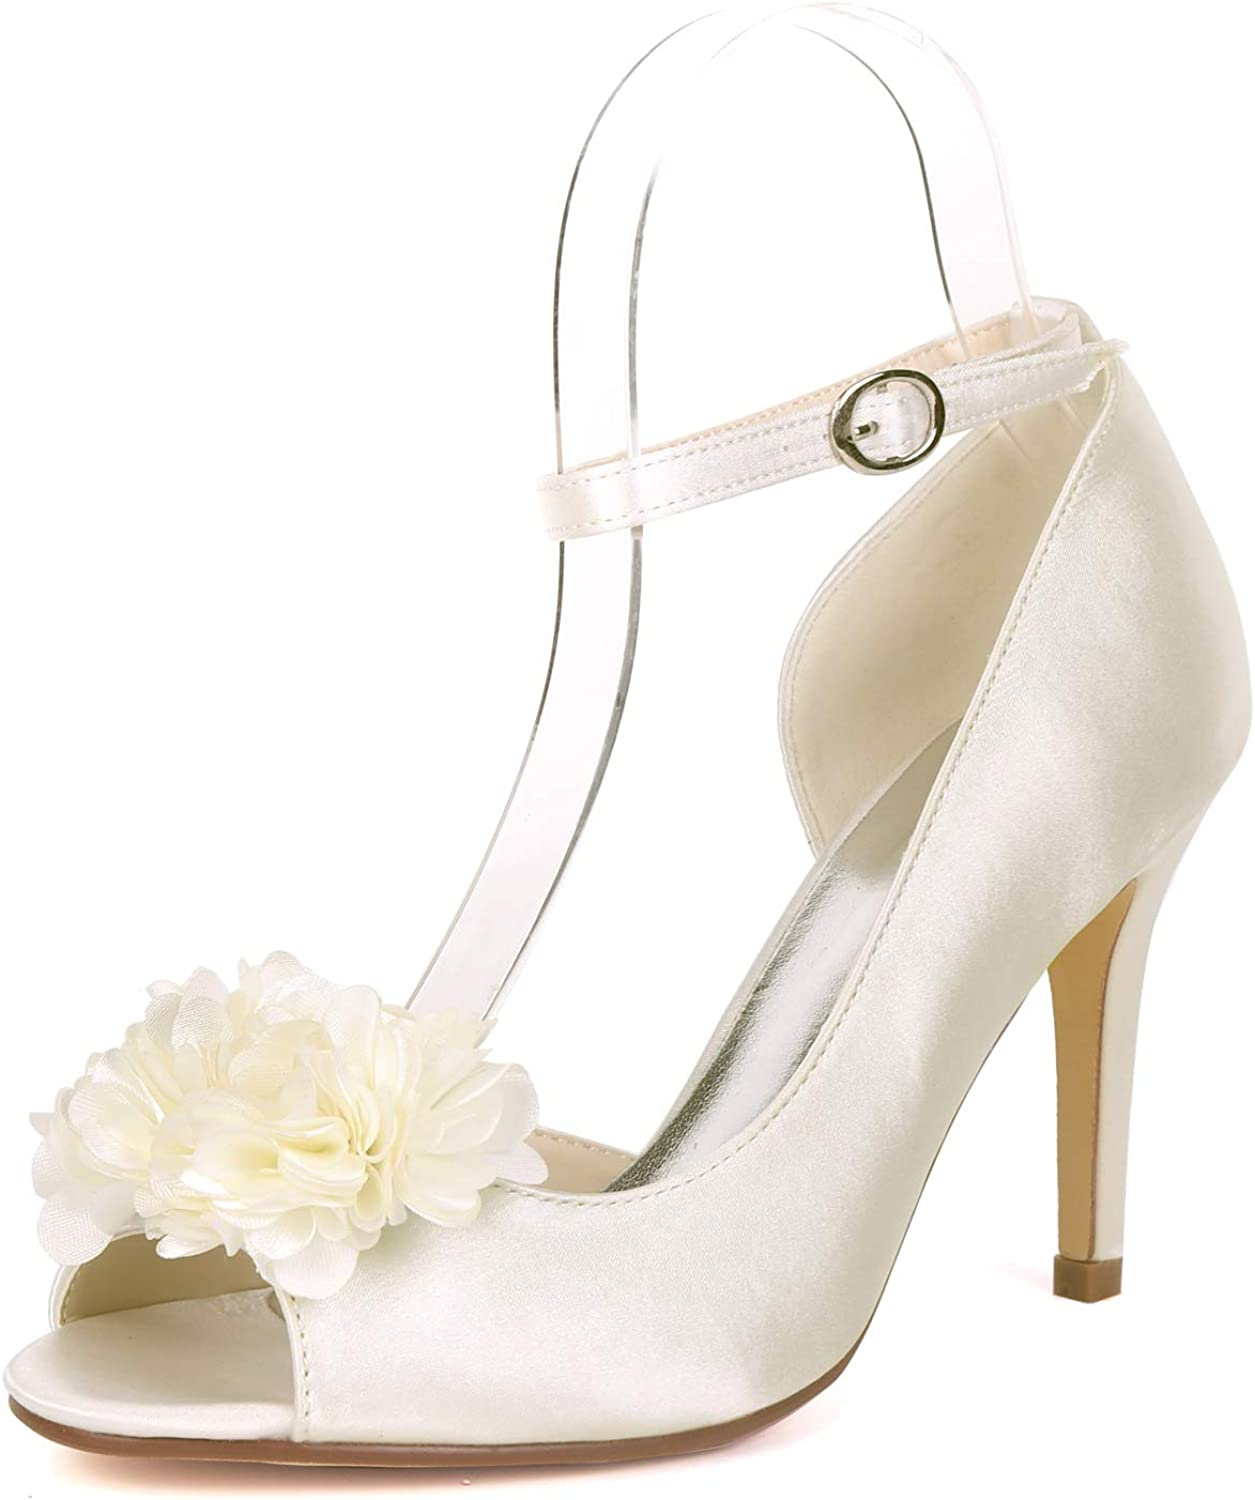 Myloo Women's Peep Toe High Heel Pumps Floral Evening Prom Bridal Wedding shoes